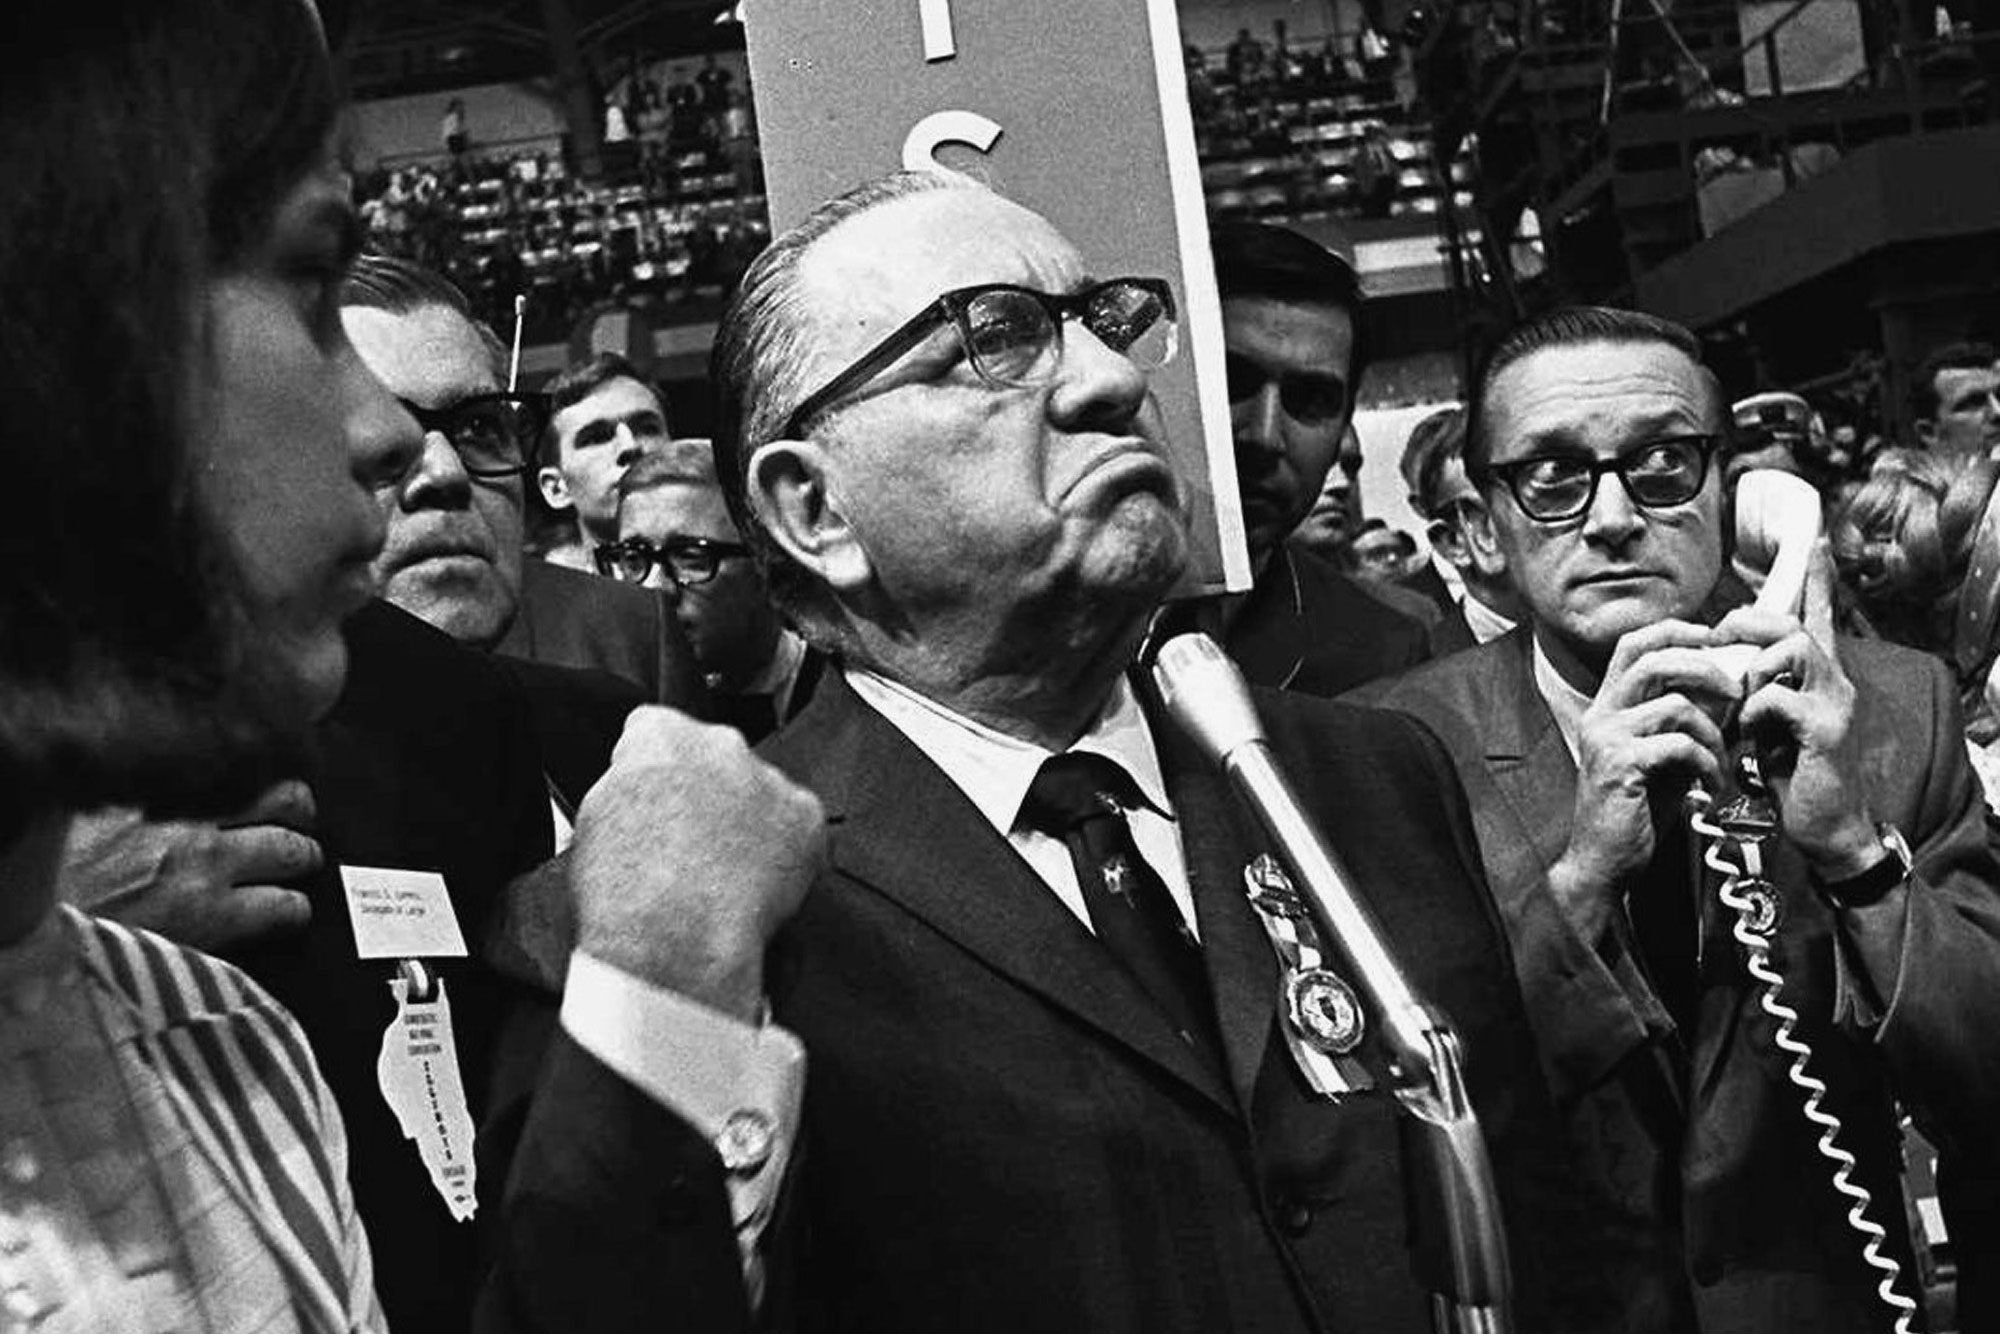 Protests and Blaming the Media. Sound Familiar? That Was During the '68 Democratic National Convention.